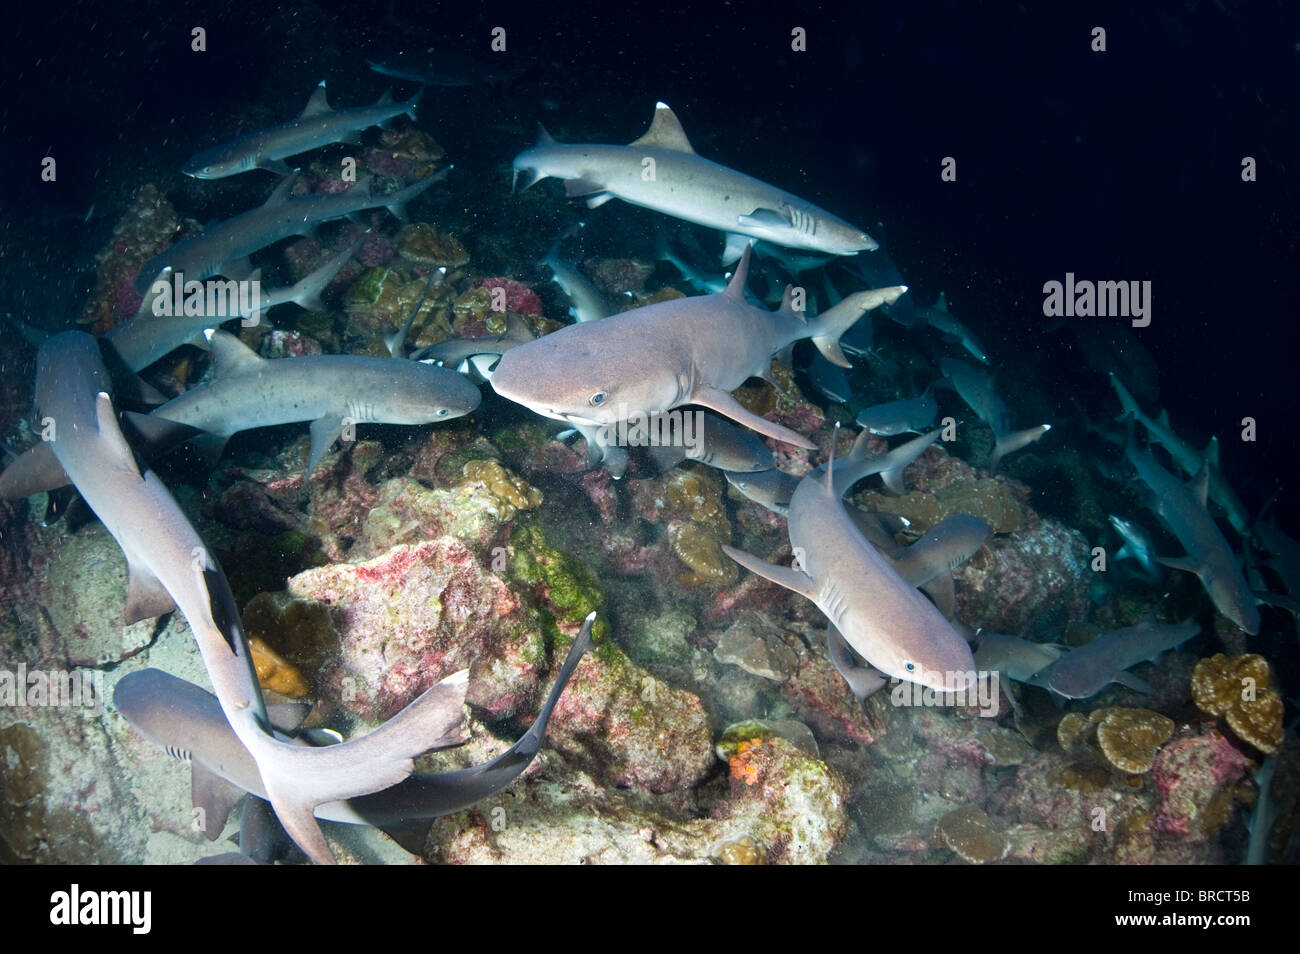 White tip reef sharks, Triaenodon obesus, hunting in the night, Cocos Islands, Pacific - Stock Image